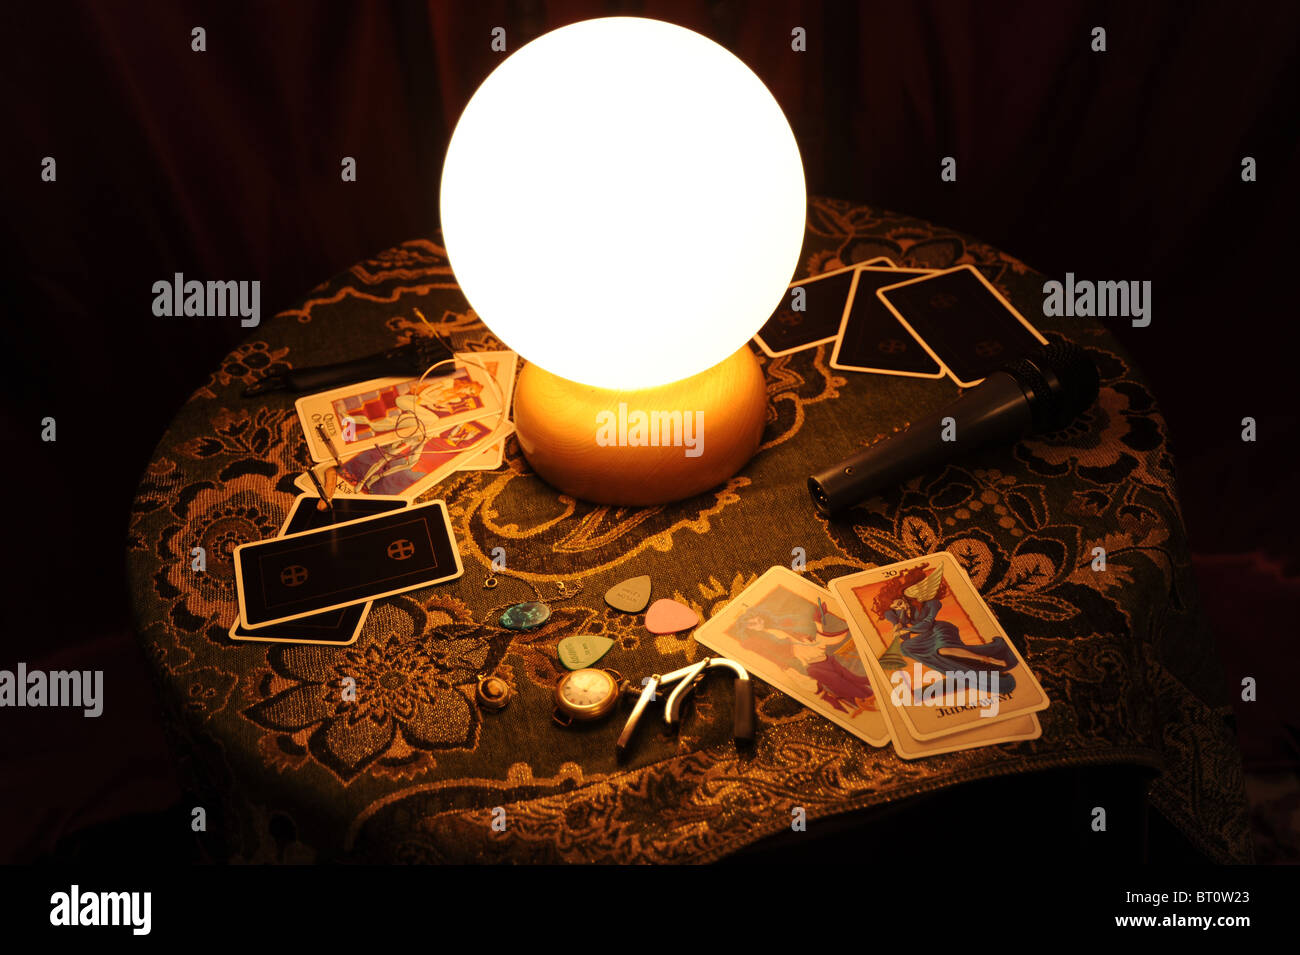 Fortune telling and Tarot cards - Stock Image